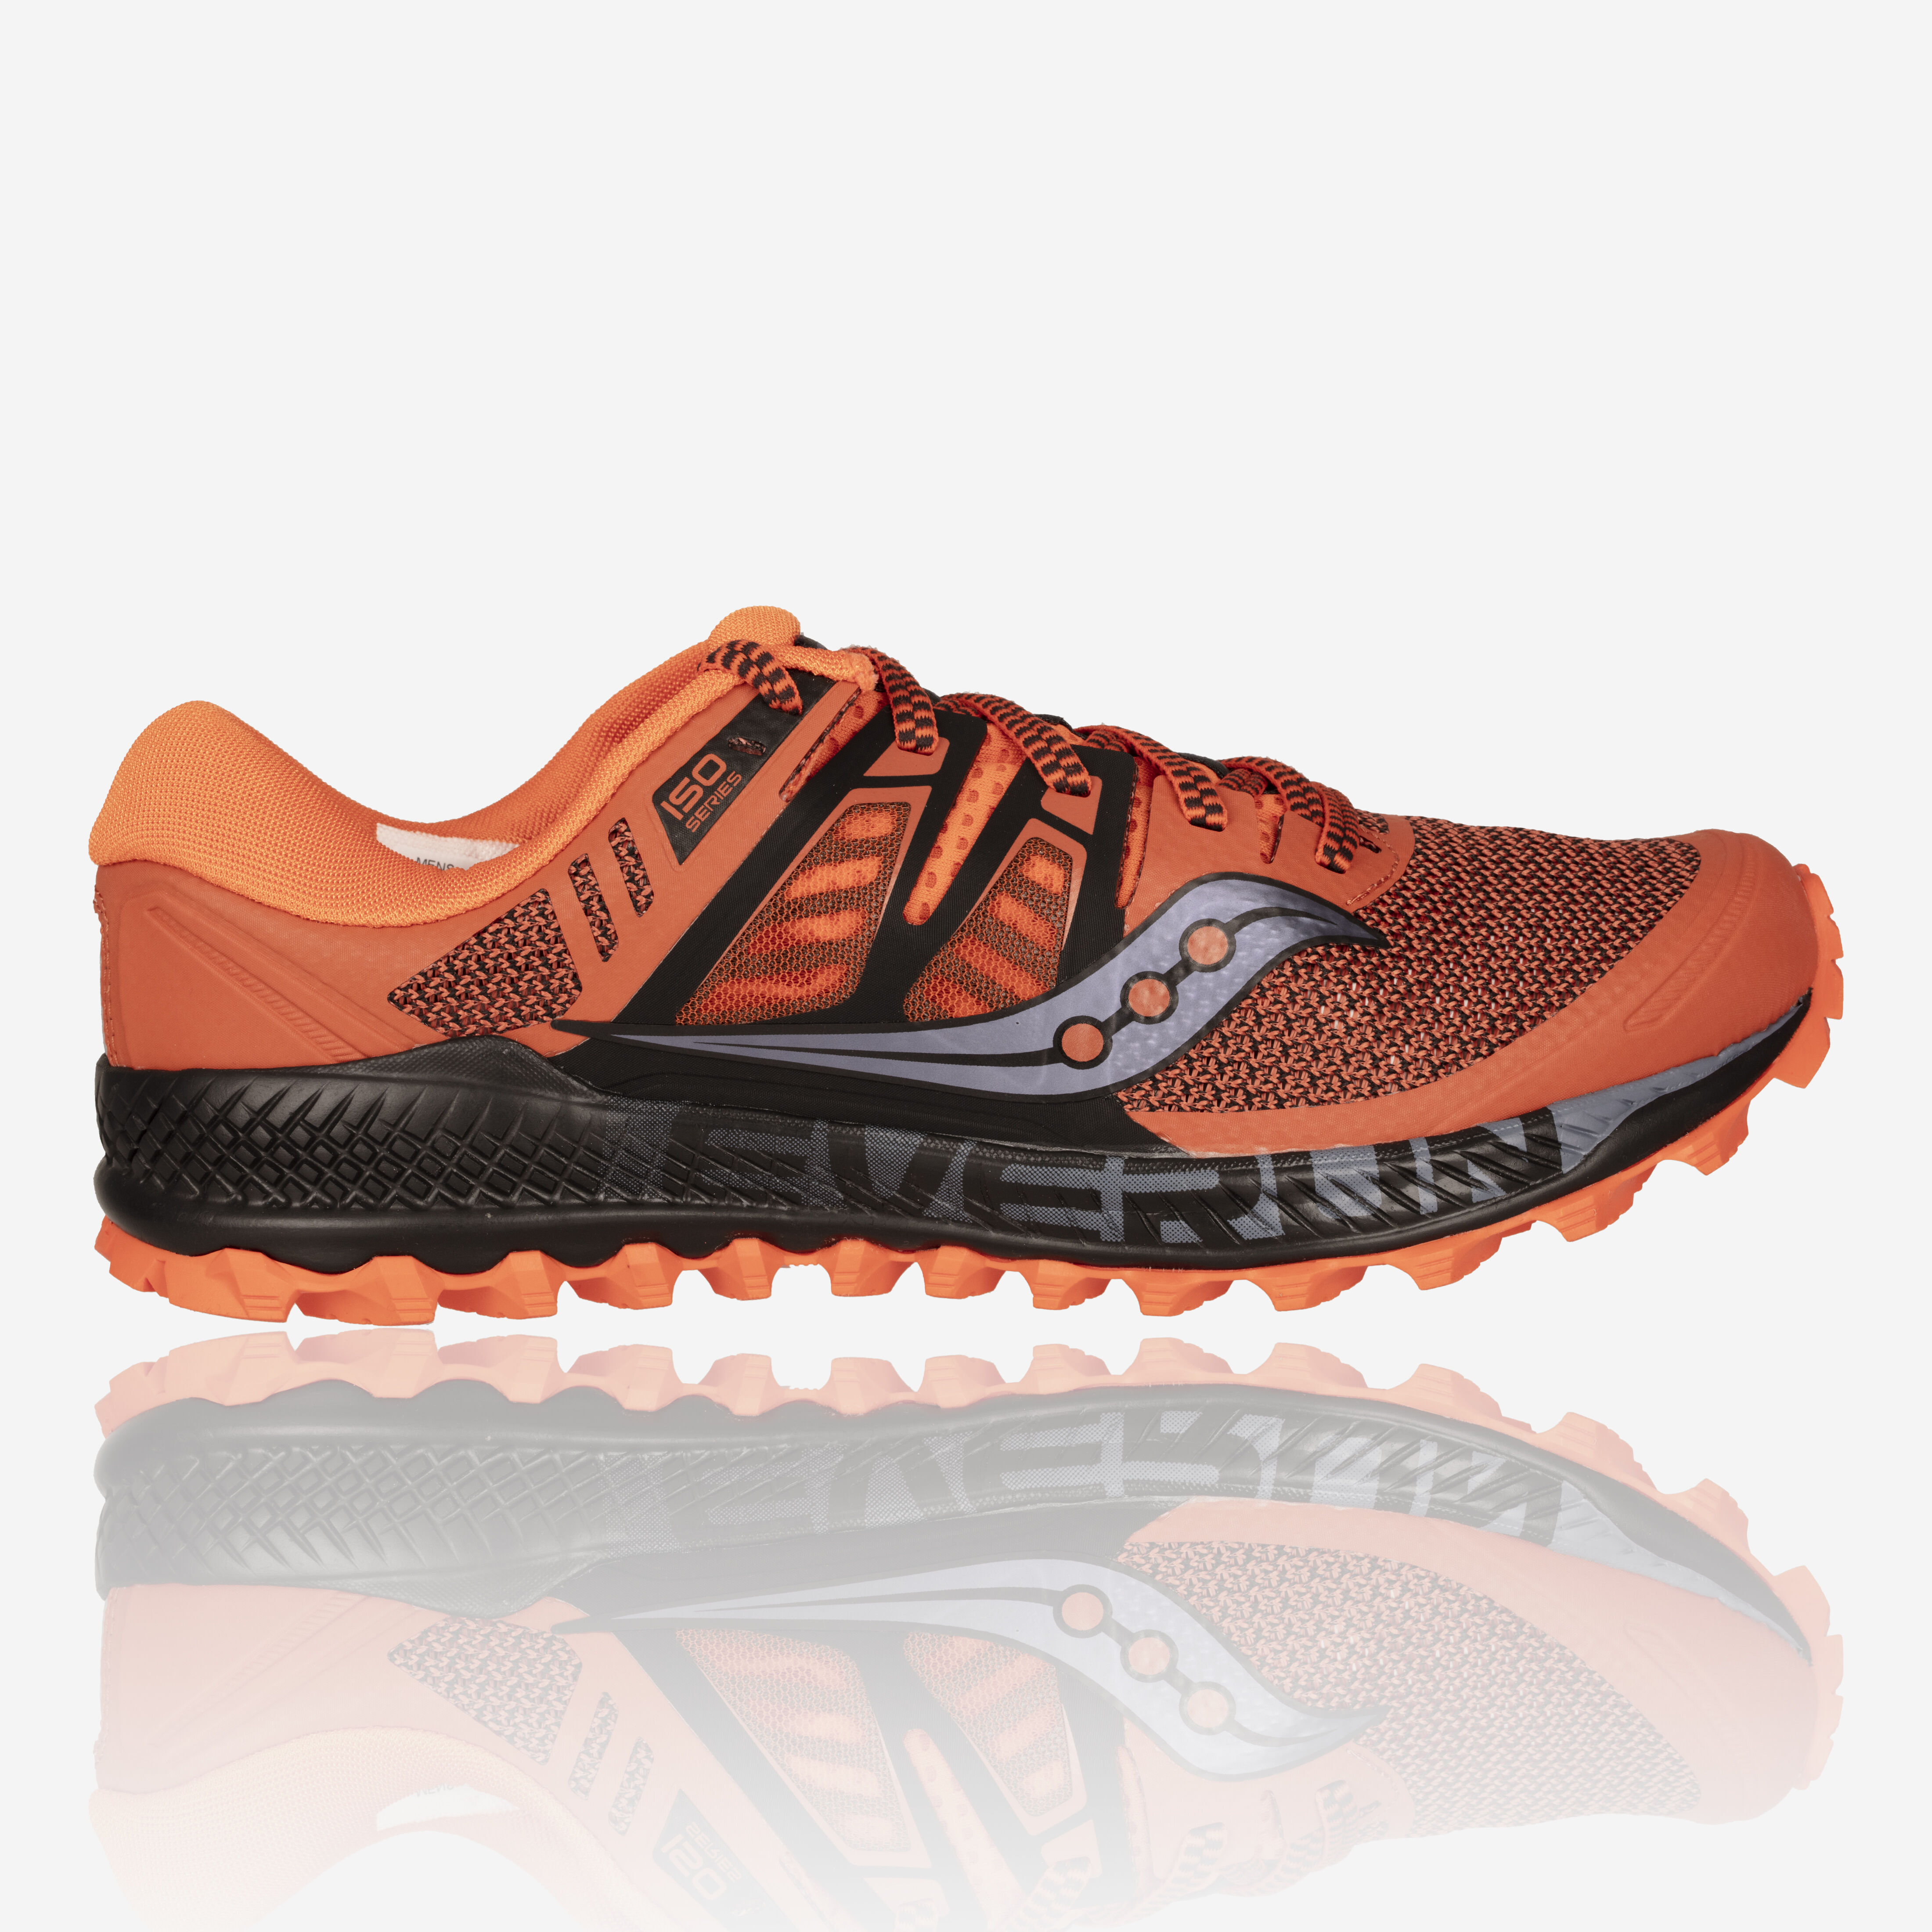 saucony india website